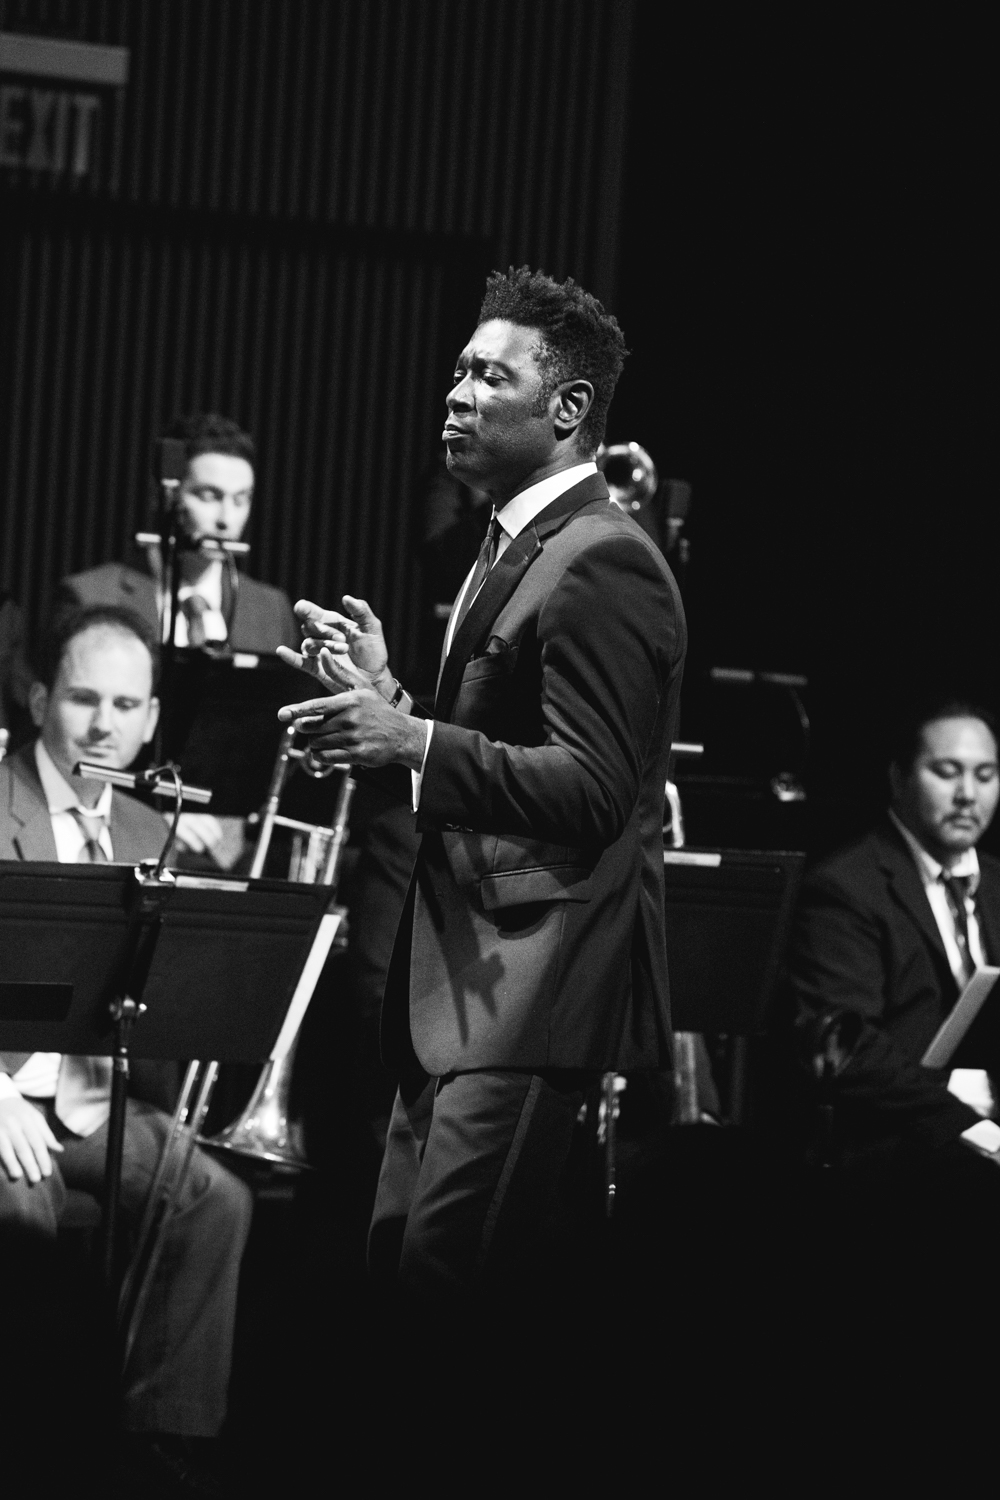 marcus-shelby-orchestra-sf-live-show-sfjazz.jpg